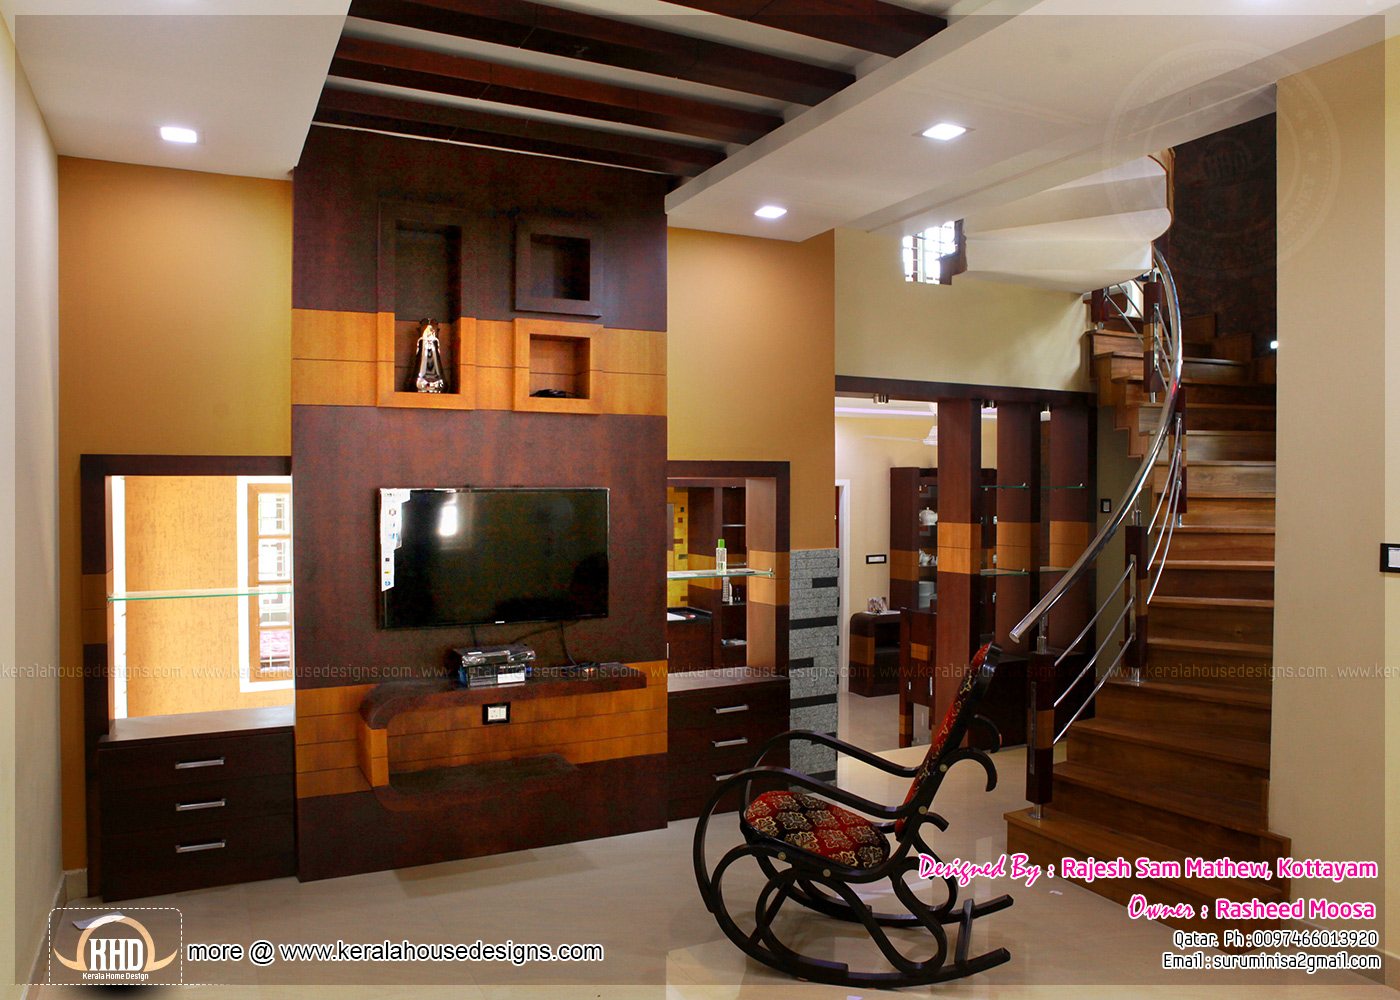 kerala interior design with photos kerala home design and floor plans. Black Bedroom Furniture Sets. Home Design Ideas